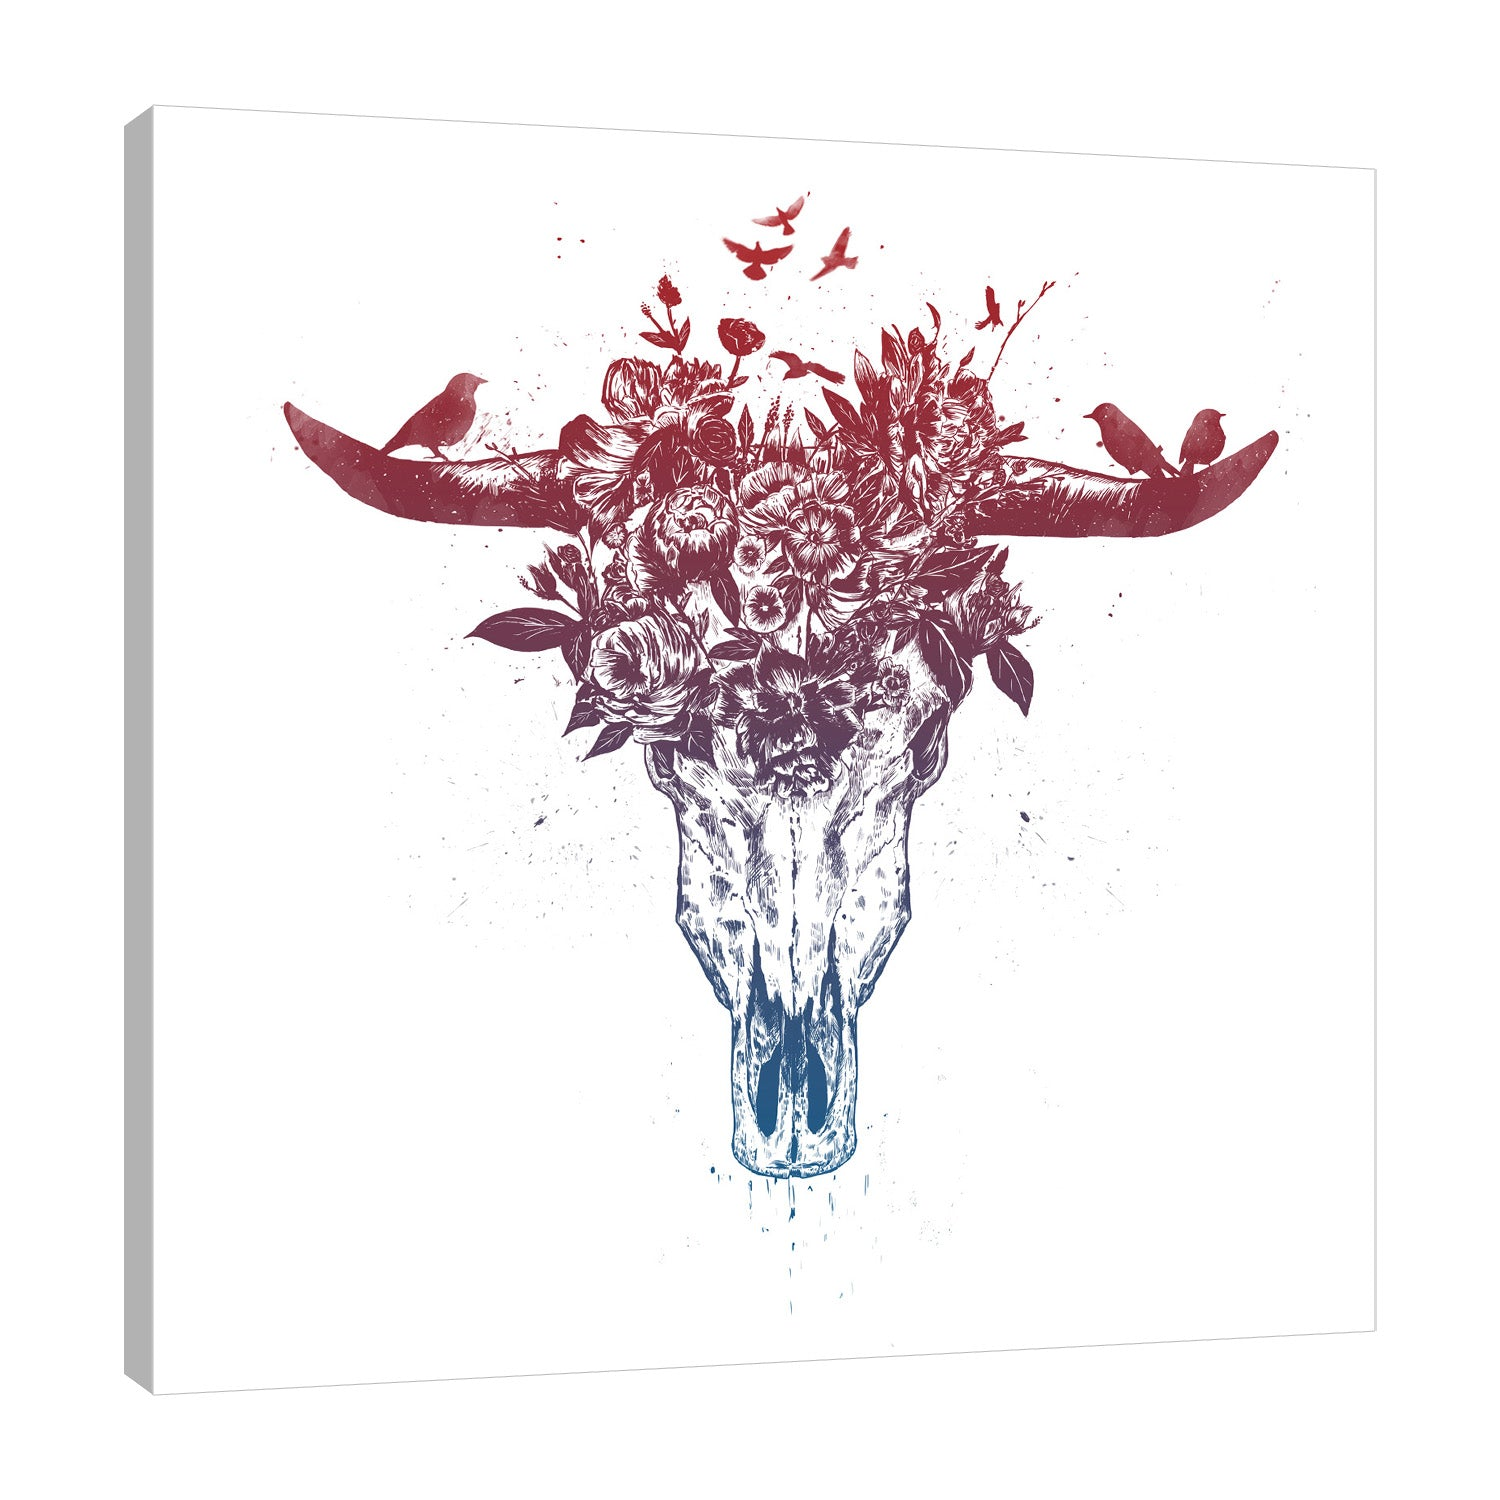 Balazs-Solti,Modern & Contemporary,Animals,Floral & Botanical,animals,animal,florals,floral,flower,flowers,birds,bird,skull,skulls,leaves,horns,horn,Salmon Pink,Gray,White